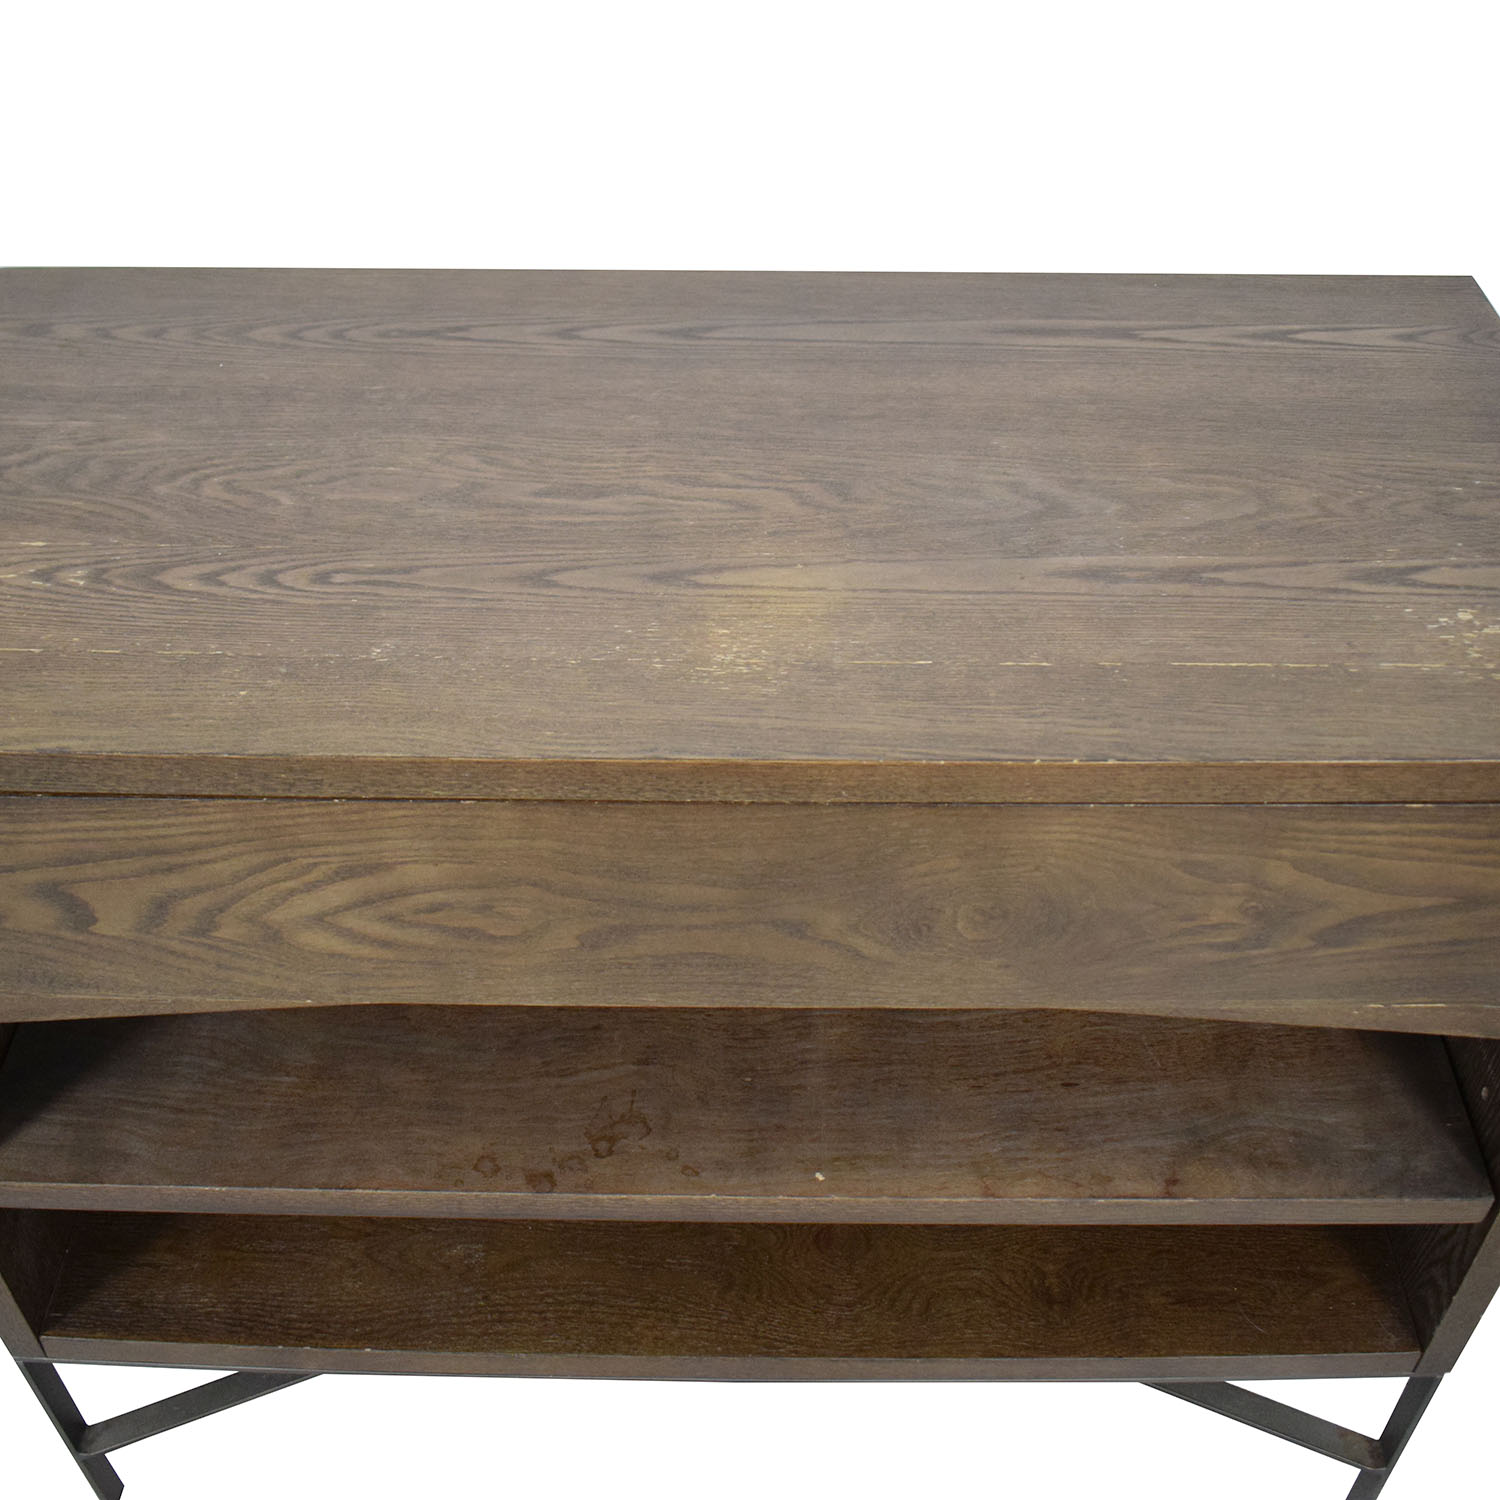 West Elm West Elm Preston Media Console price